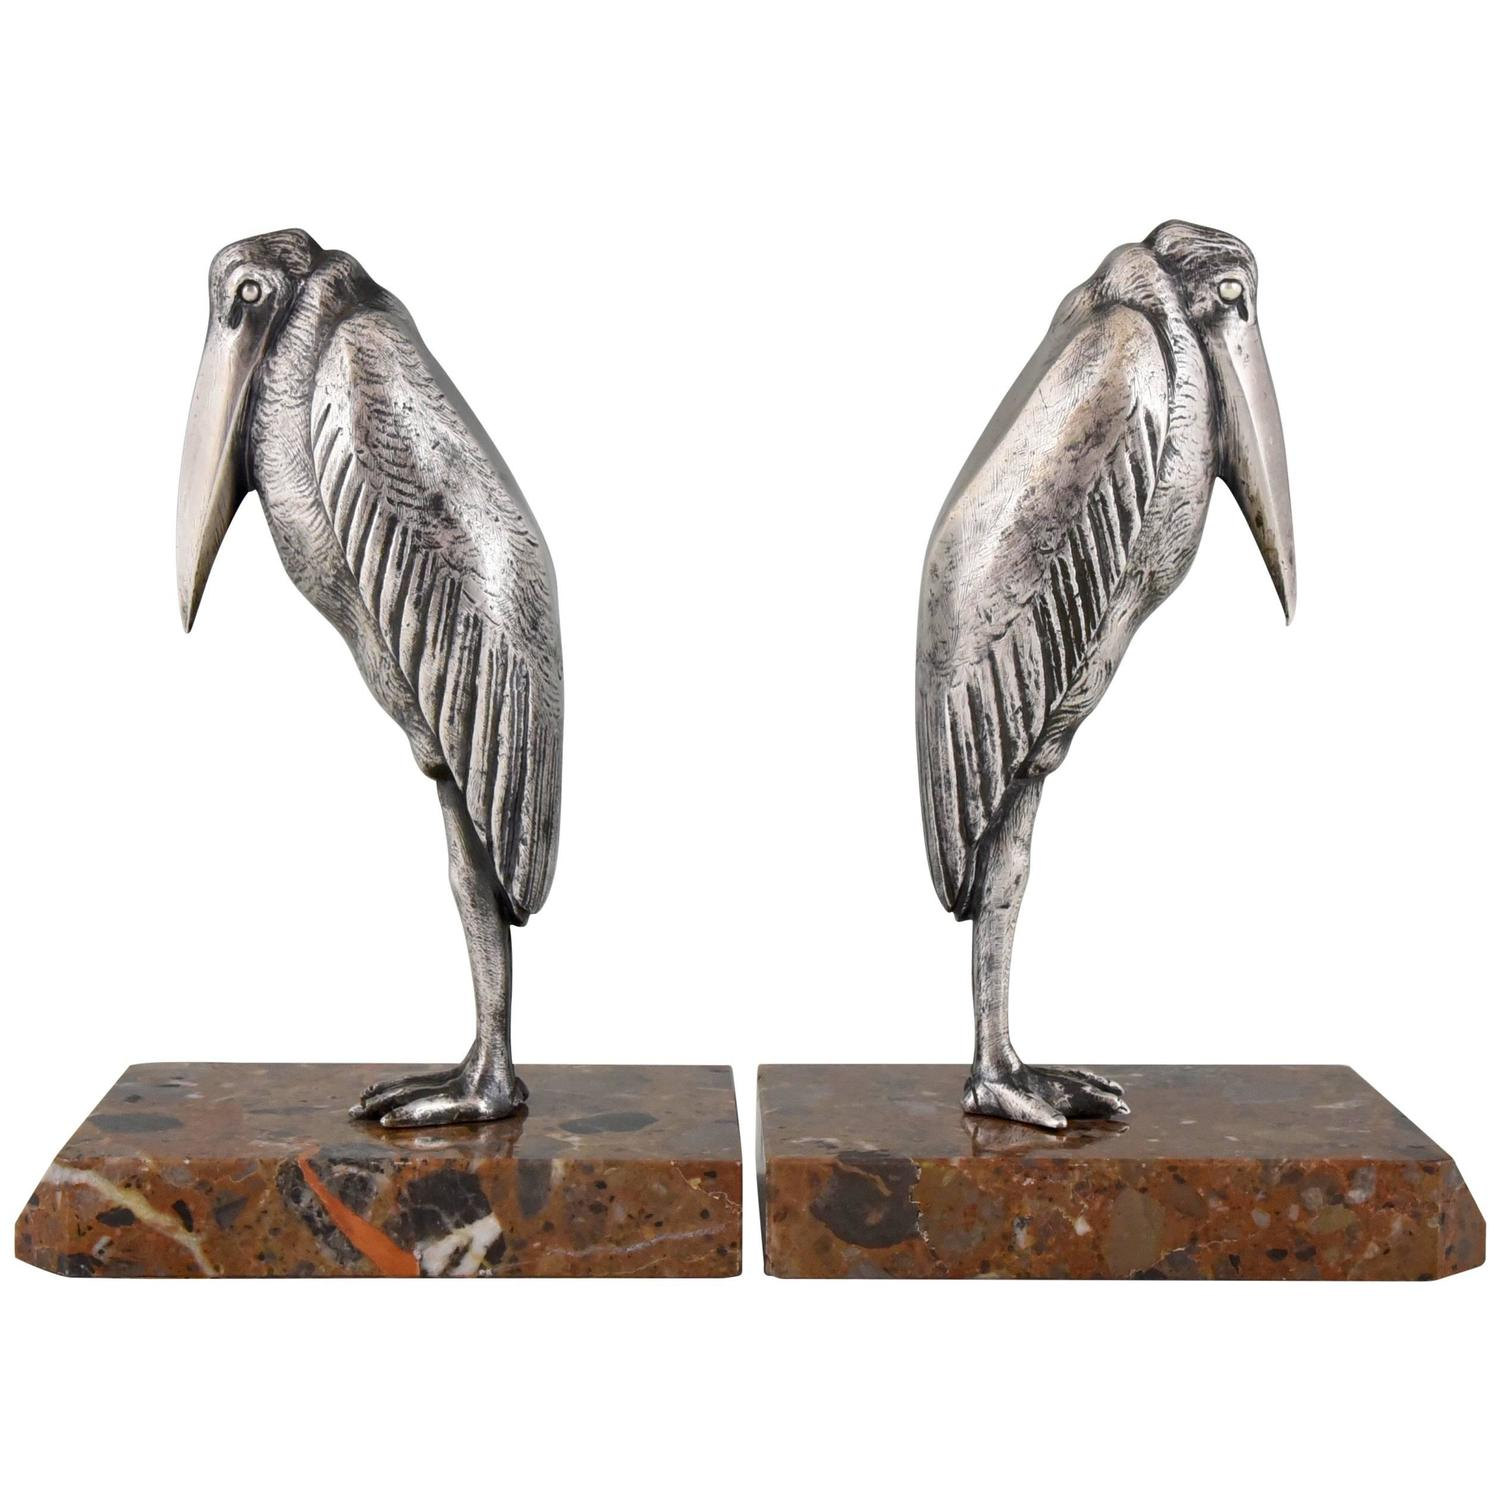 Art Deco Bonze Marabou Bookends By Claude, M. Guillemard, 1930 France At  1stdibs